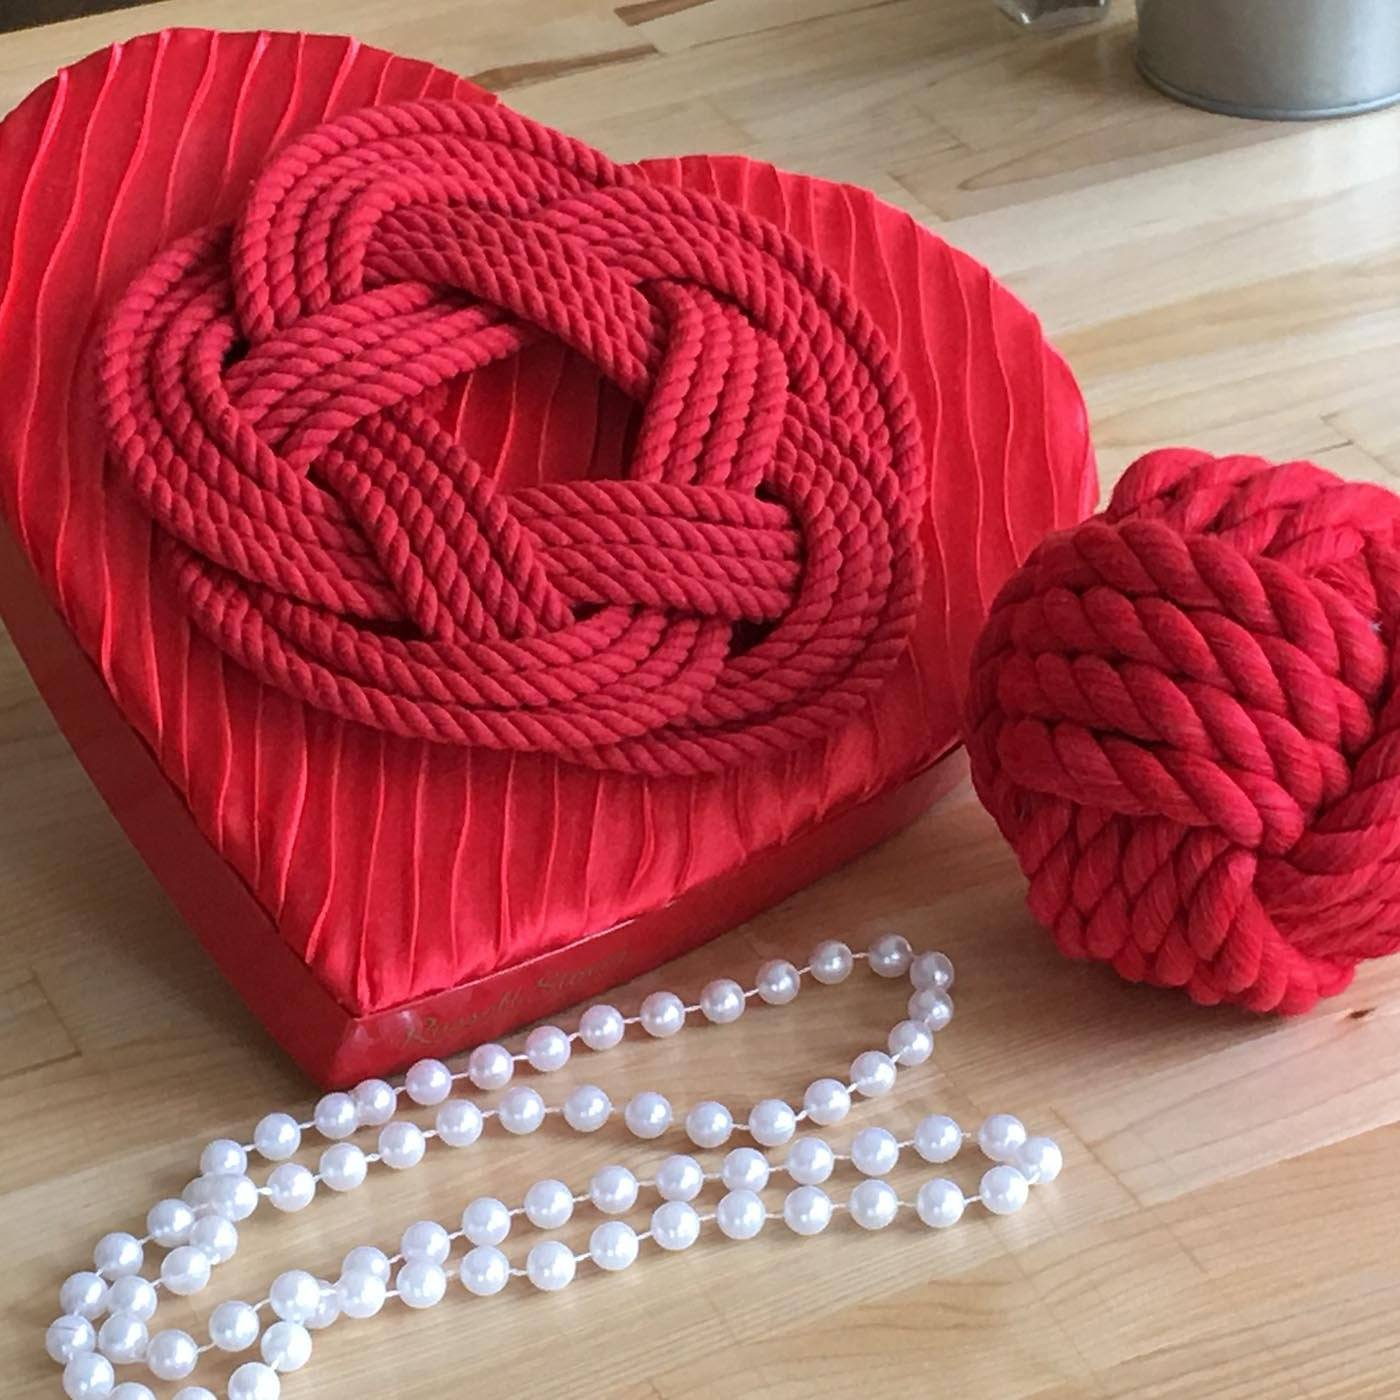 A Knotty Valentine's Day Photo Gallery